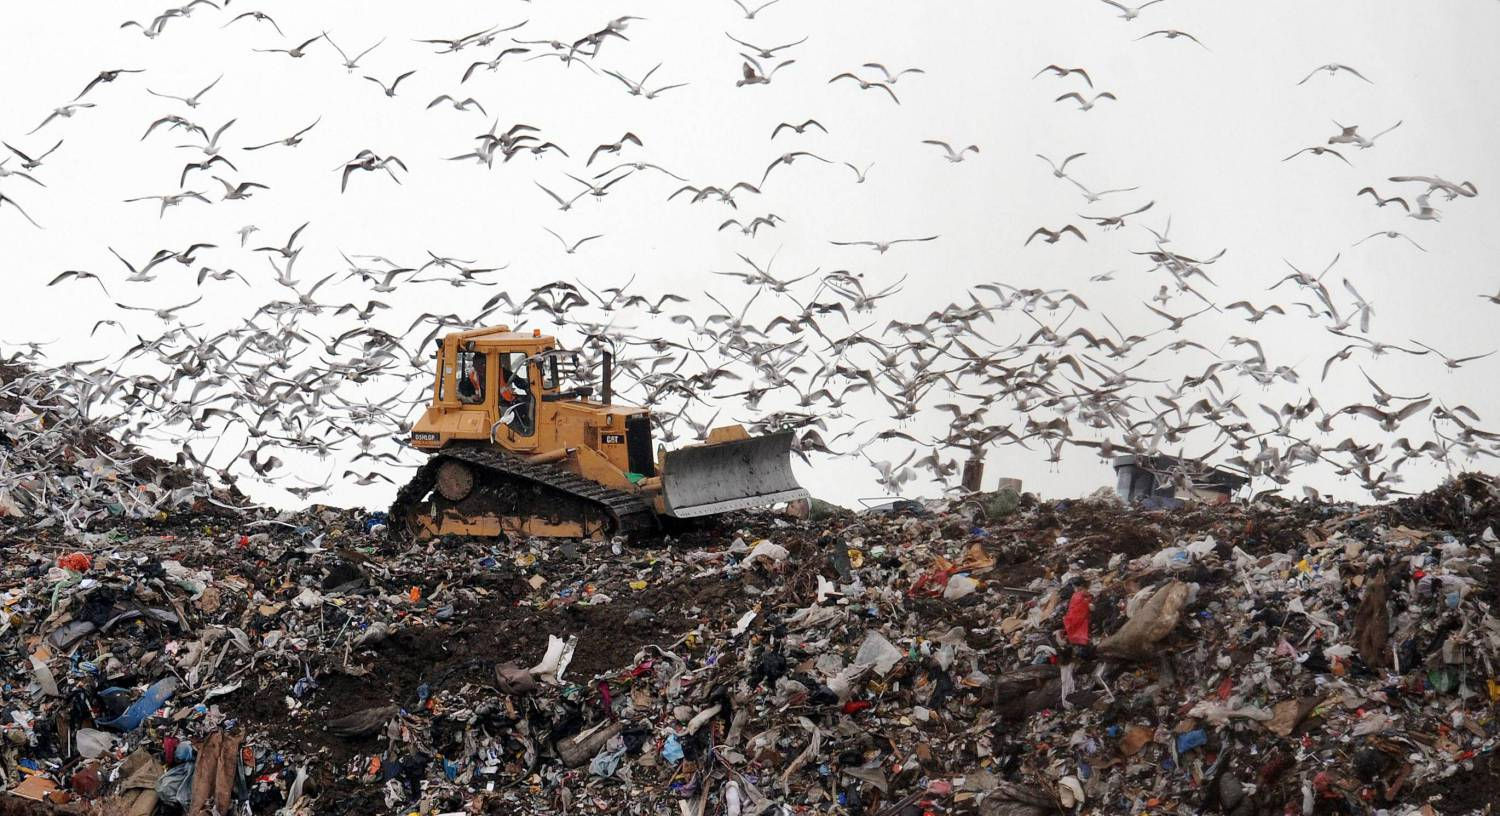 Jacob Duer:The coronavirus has brought with it a pandemic of plastic